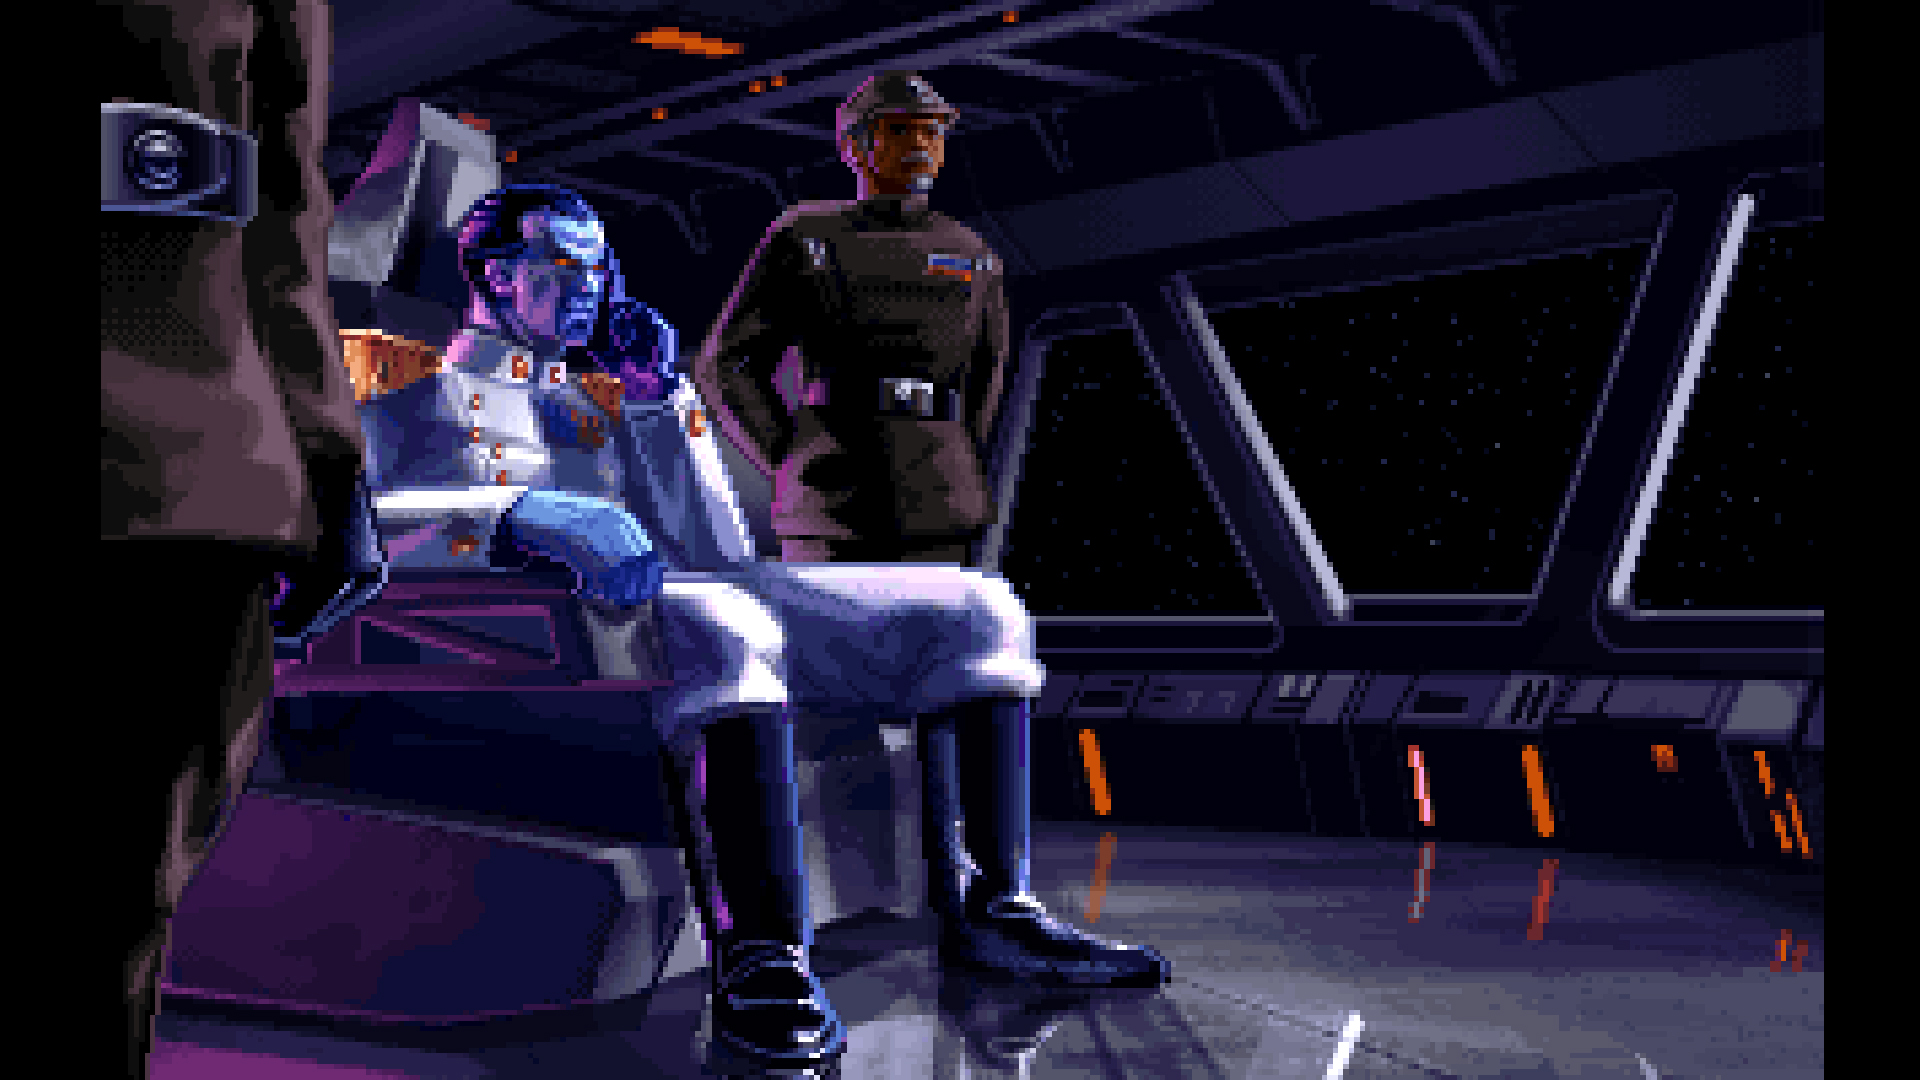 Tie Fighter also featured the new character Admiral Thrawn created by Timothy Zahn